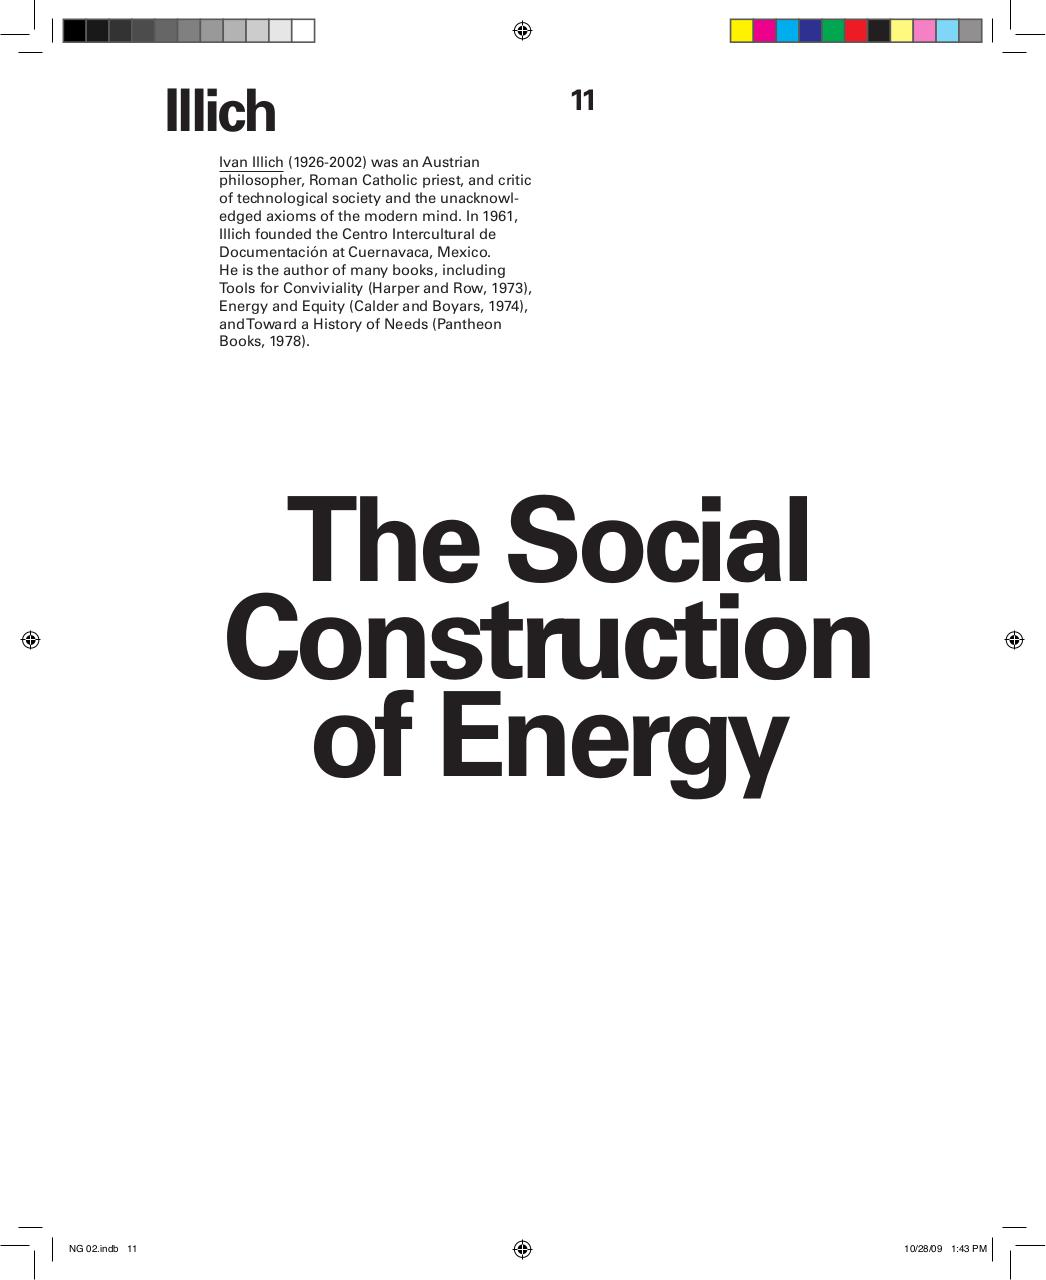 Reading 3 - Illich - The Social Construction of Energy.pdf - page 1/11